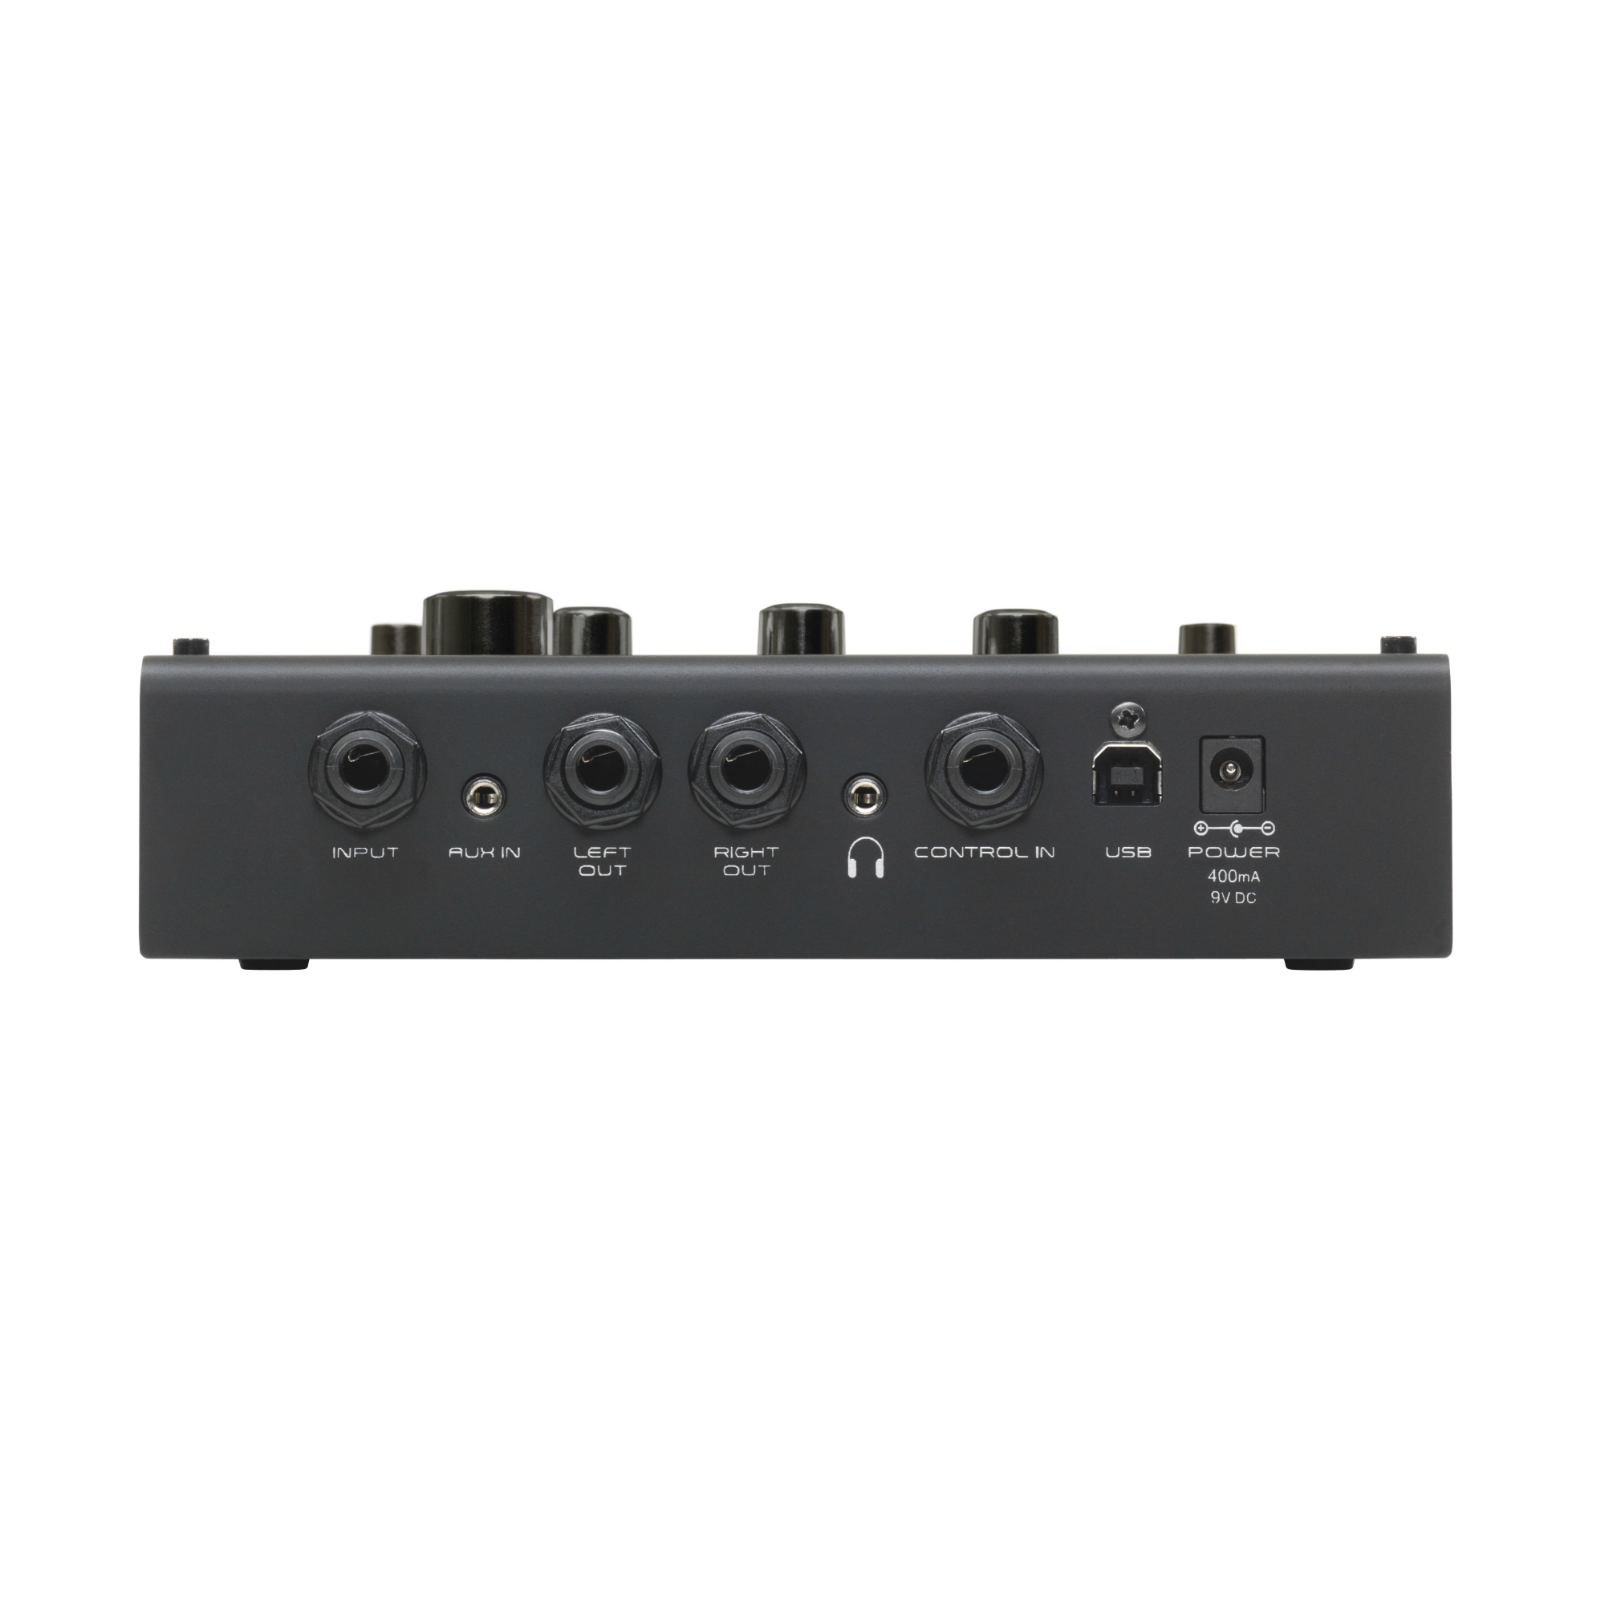 RP360 - Black - Guitar Multi-Effect Floor Processor with USB Streaming - Back